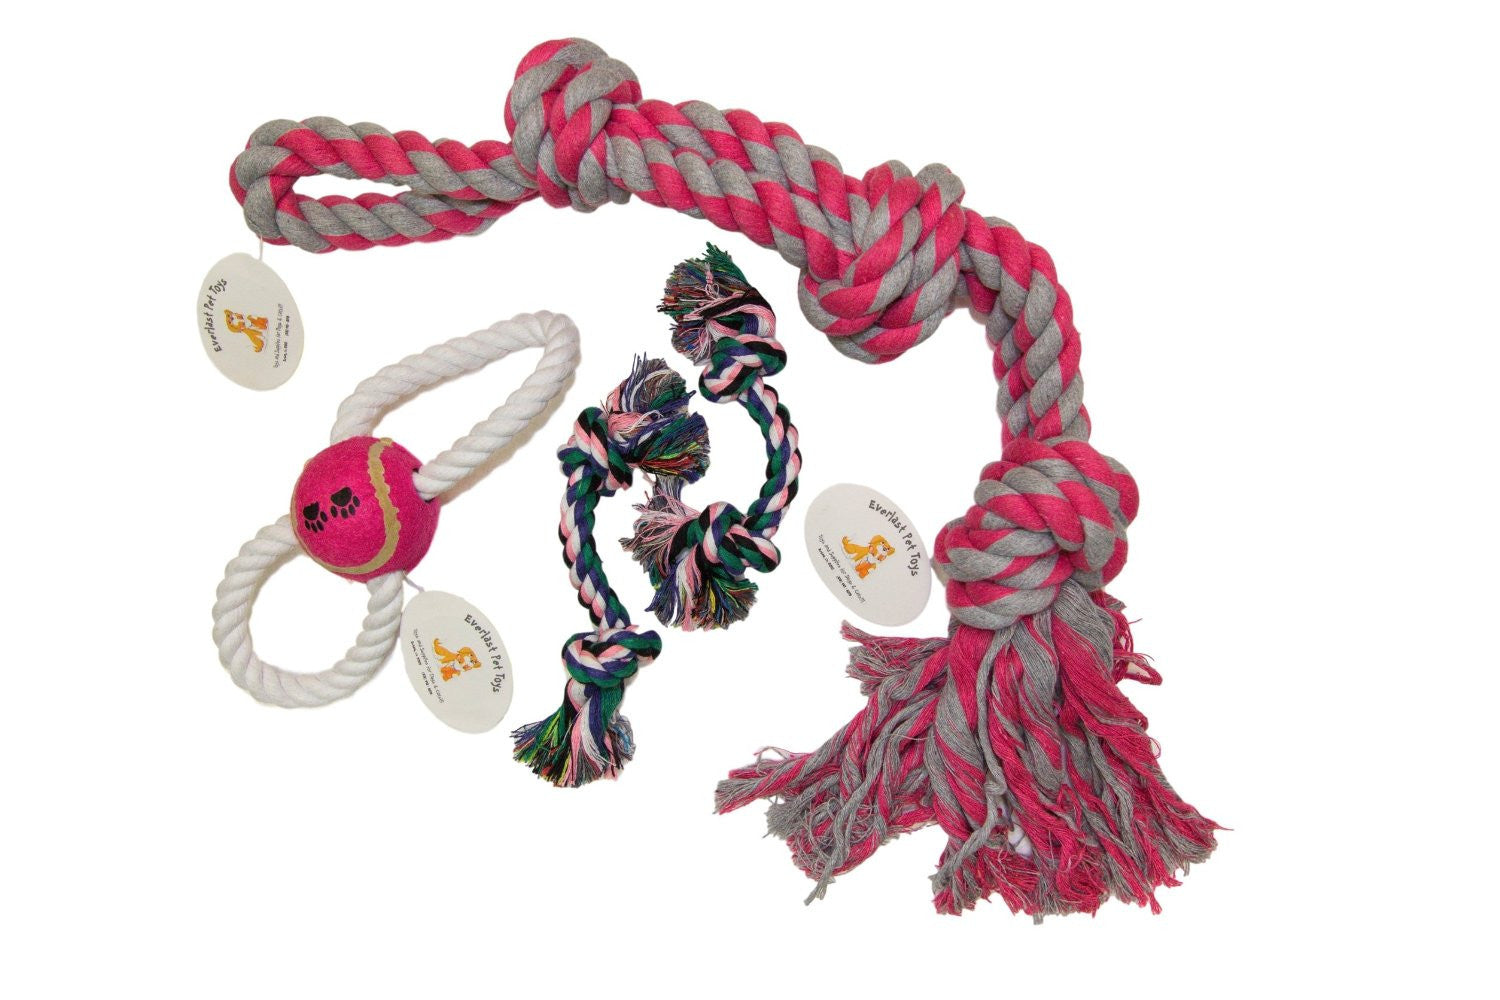 Jumbo Rope Figure '8' Rope & (2) Small Chew Ropes